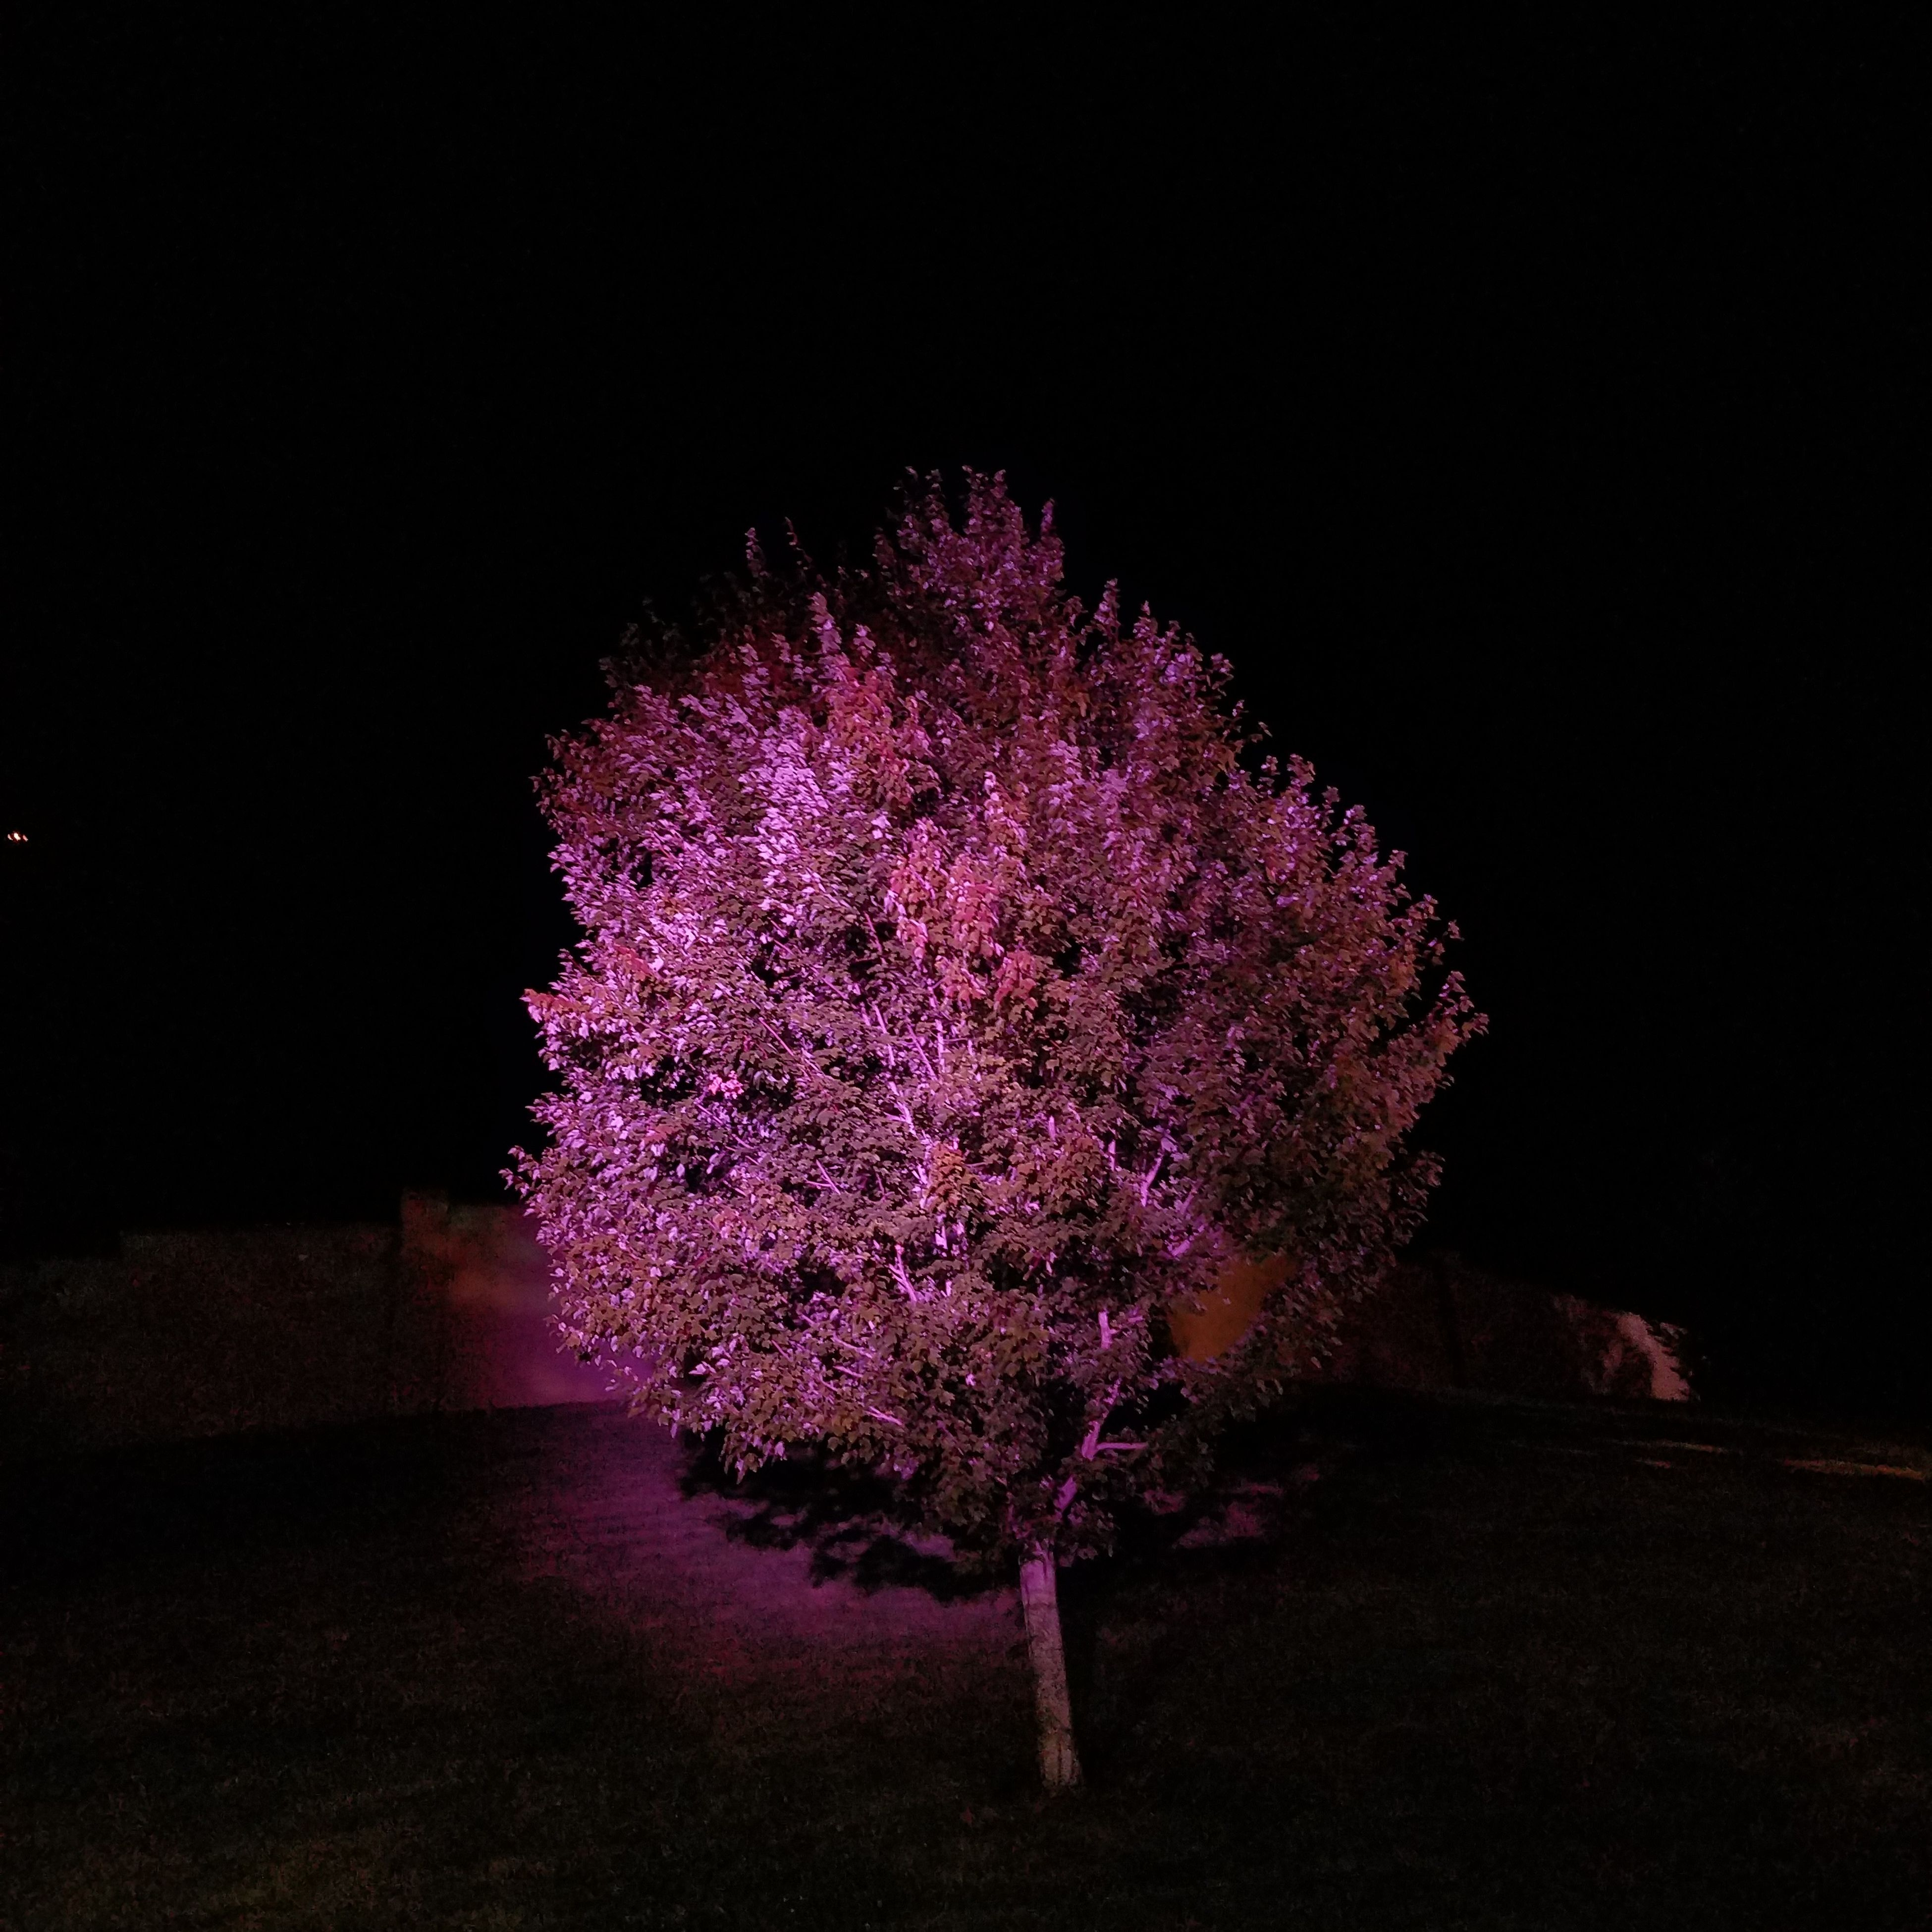 night, no people, growth, tree, flower, beauty in nature, illuminated, nature, purple, outdoors, fragility, sky, freshness